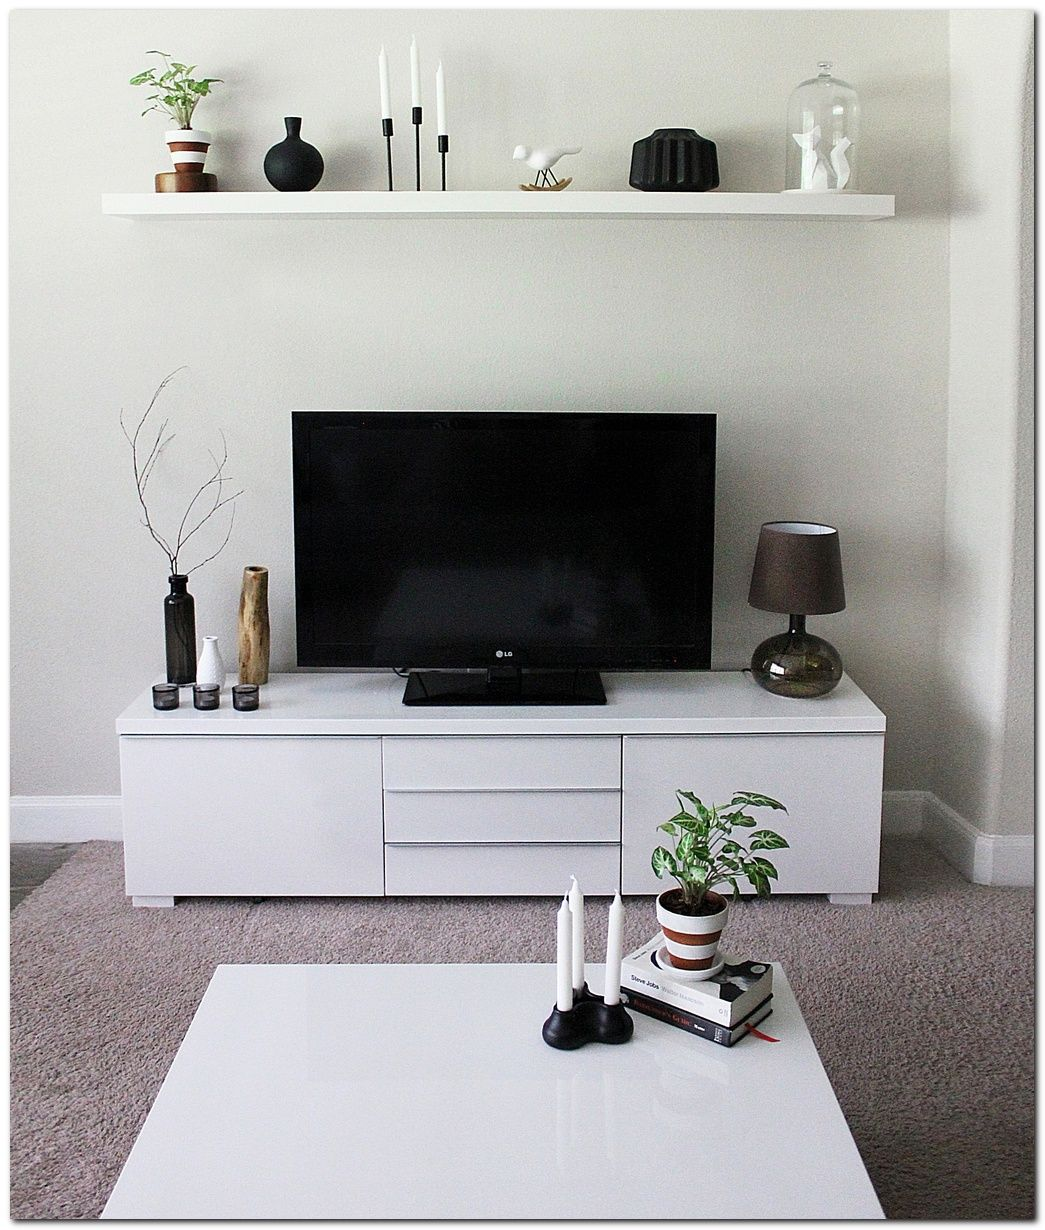 50 Cozy Tv Room Setup Inspirations With Images Ikea Living Room